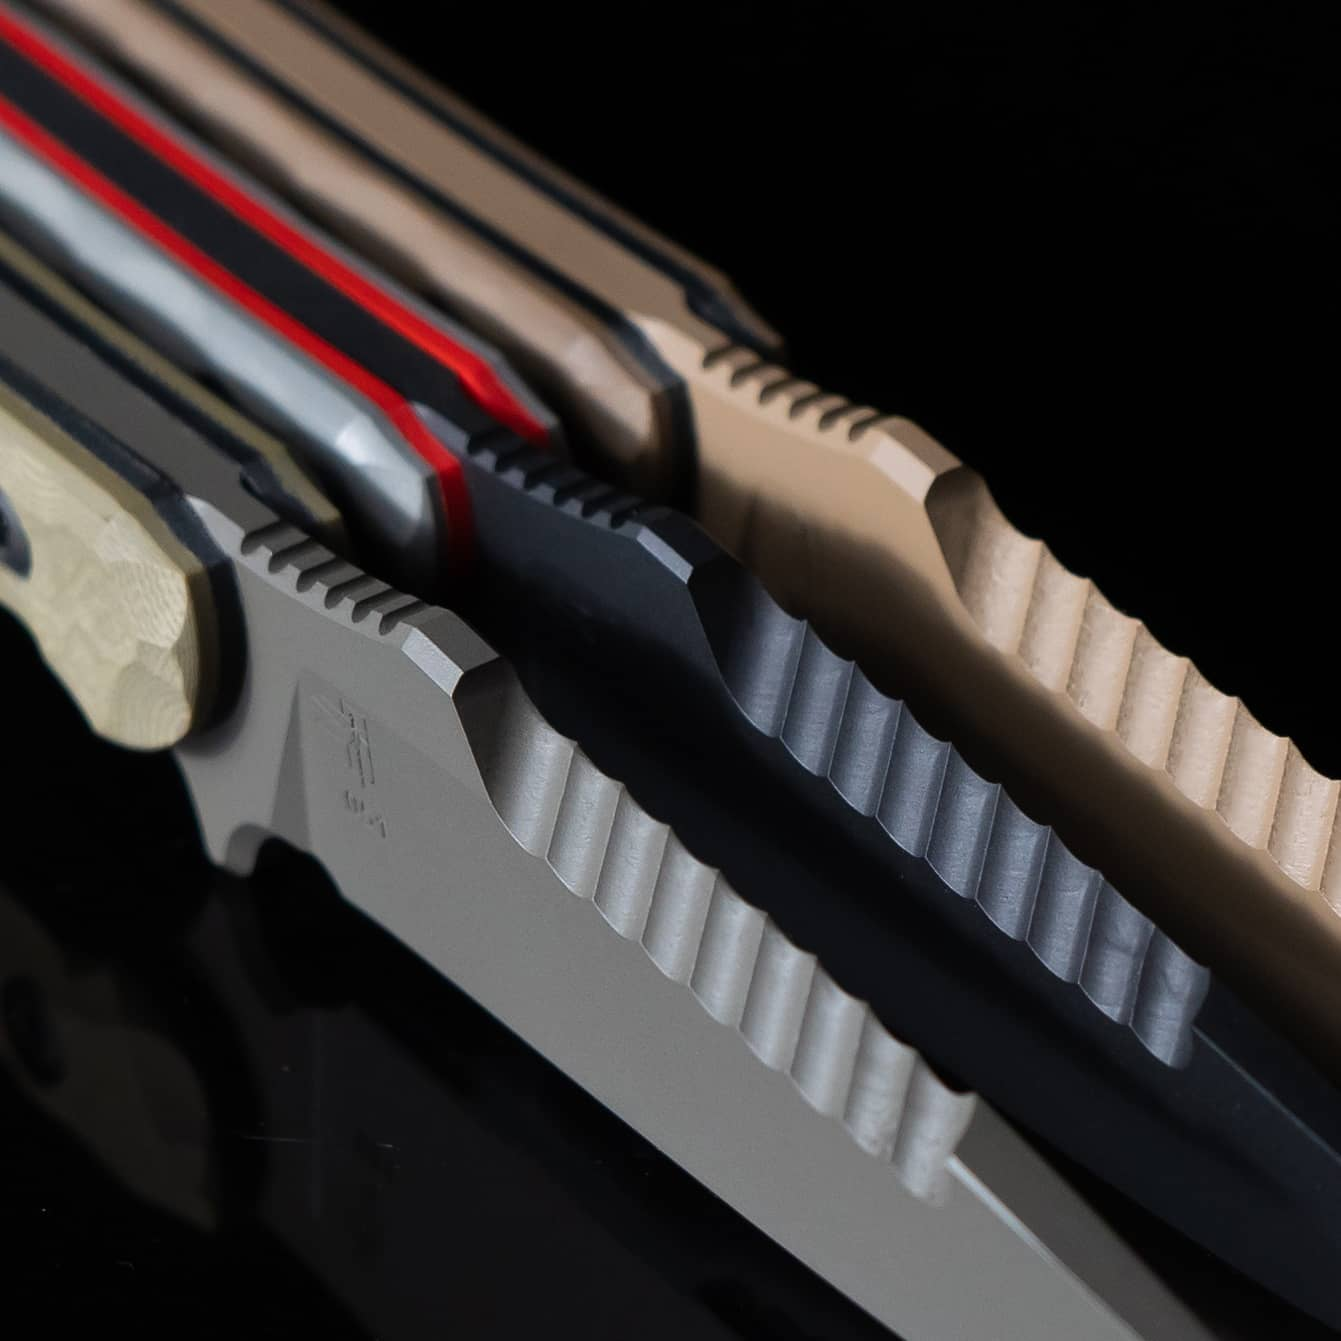 TOOR KNIVES & HALEY STRATEGIC PARTNERS TEAM UP TO DEBUT THE DARTER FIXED BLADE KNIFE